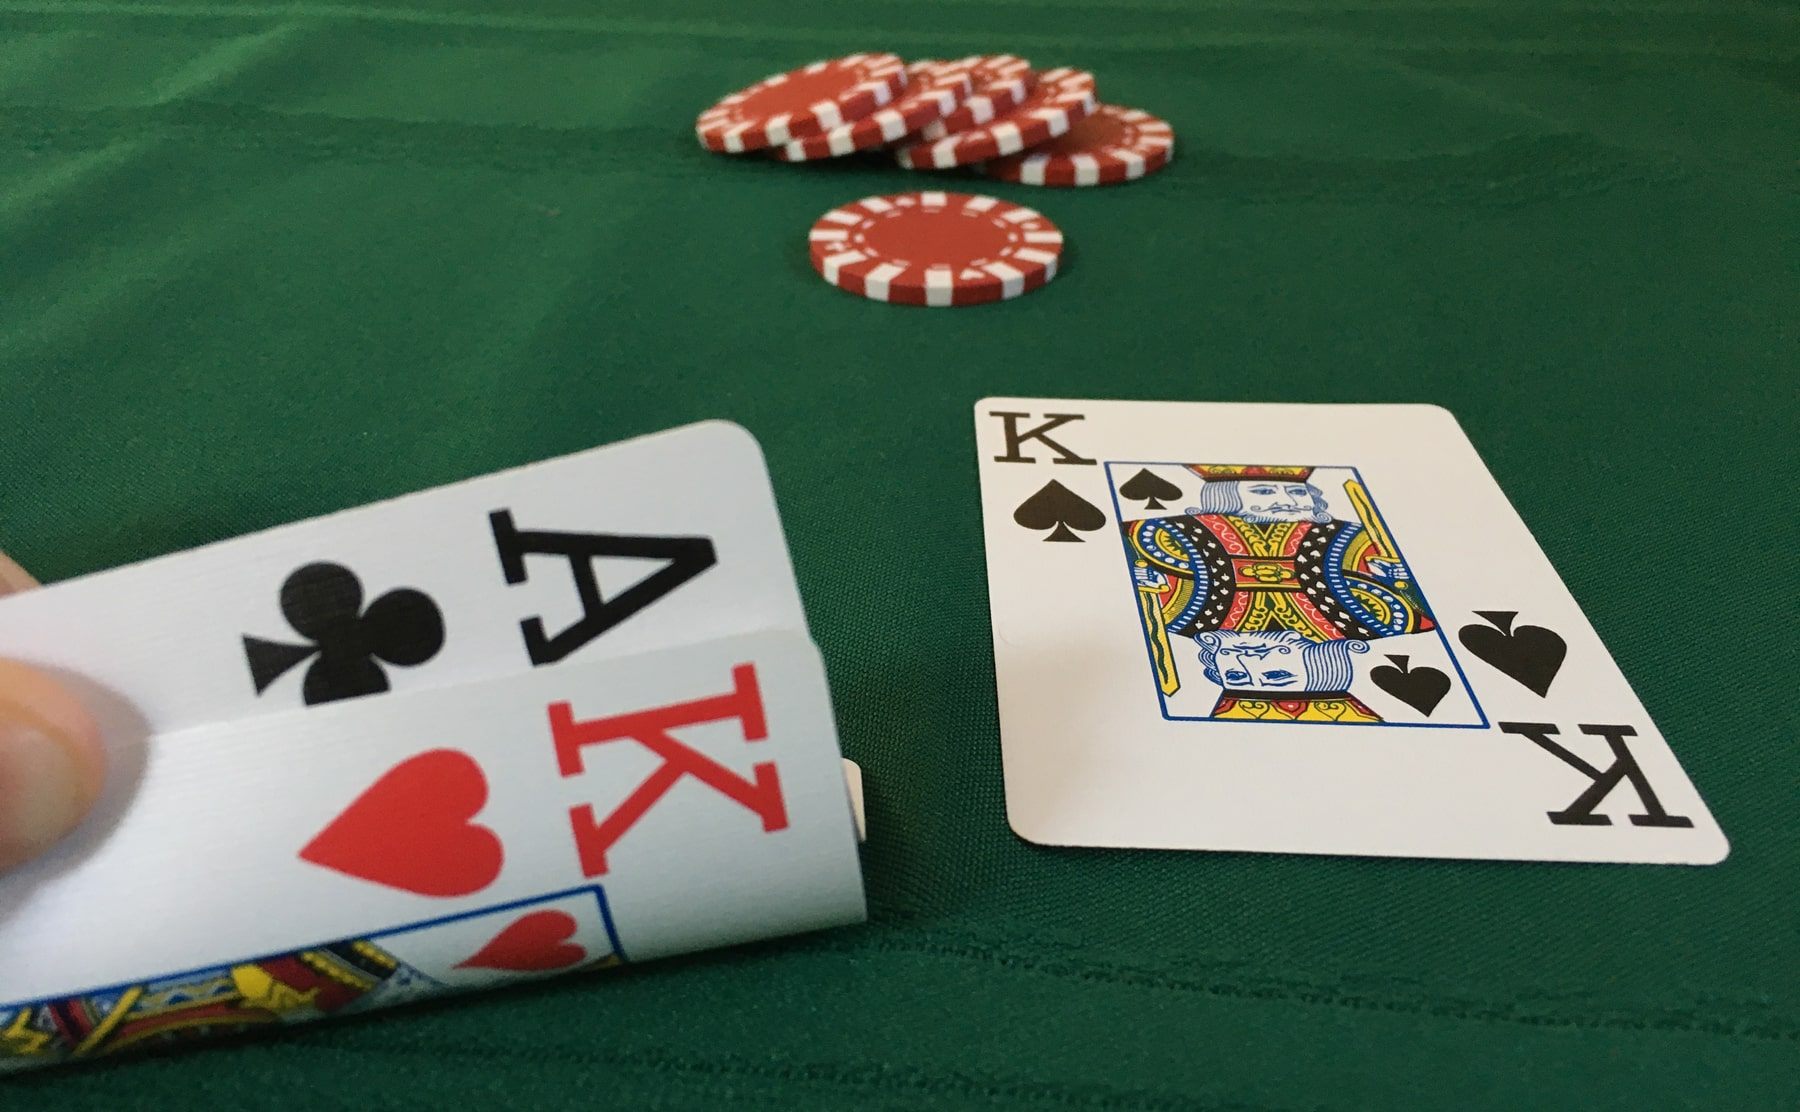 How to Make Deposits to Online Casino Websites